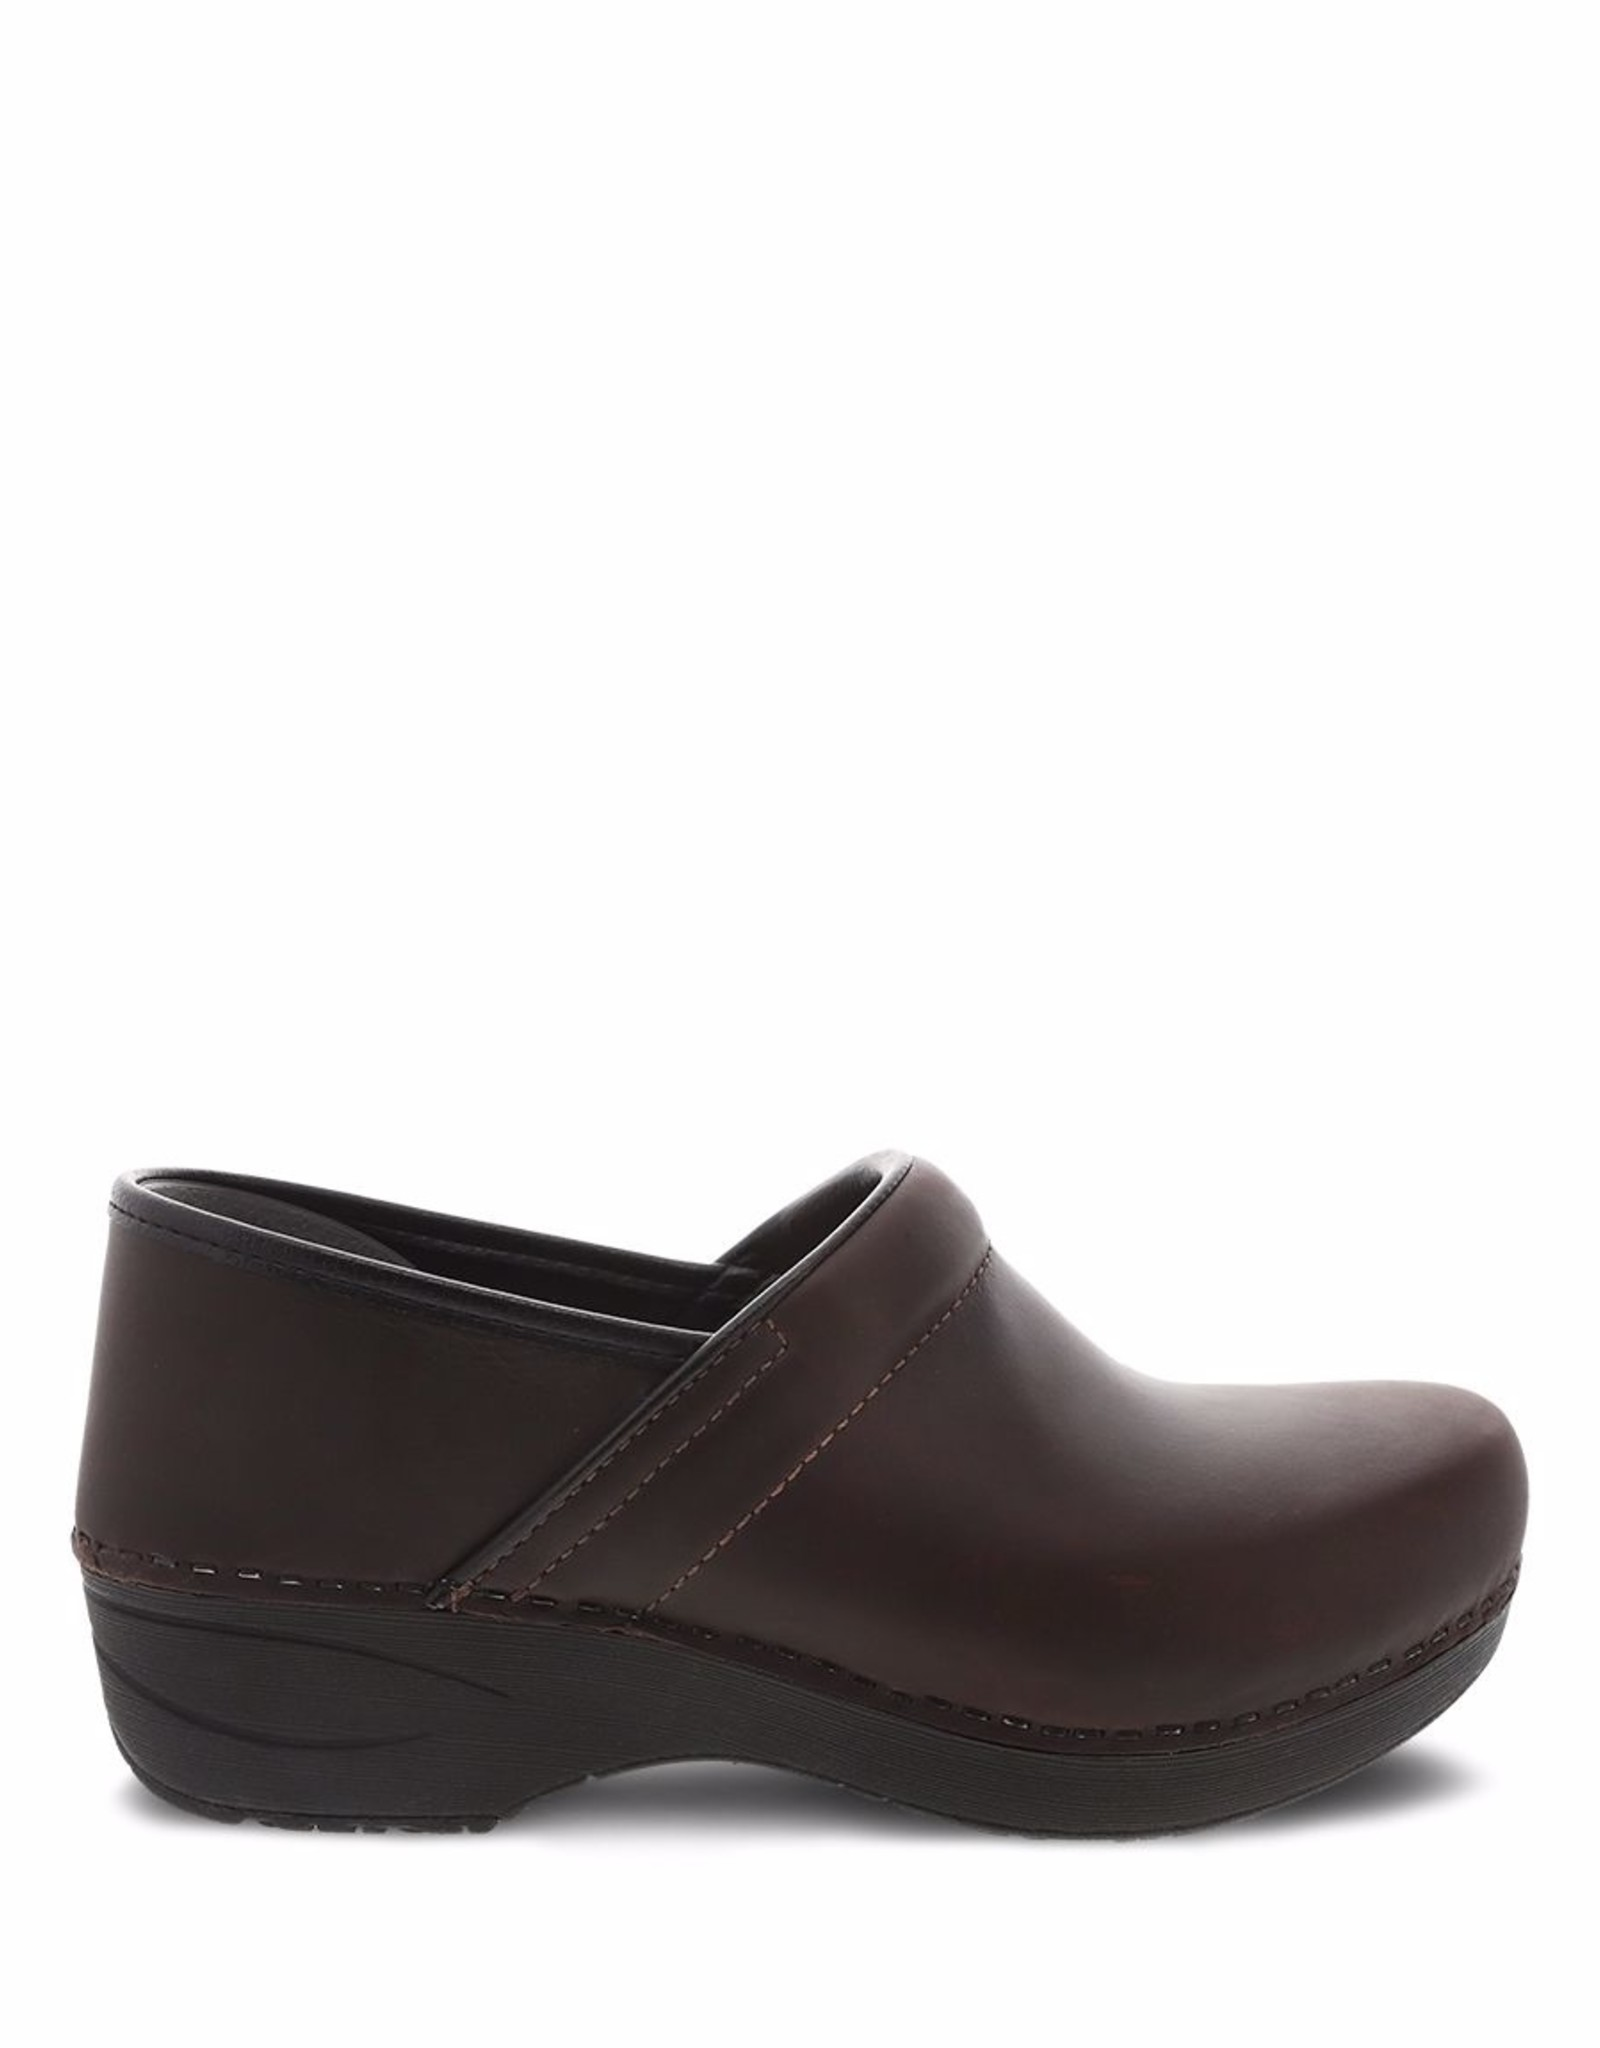 DANSKO DANSKO WOMEN'S XP 2.O WATERPROOF-BROWN